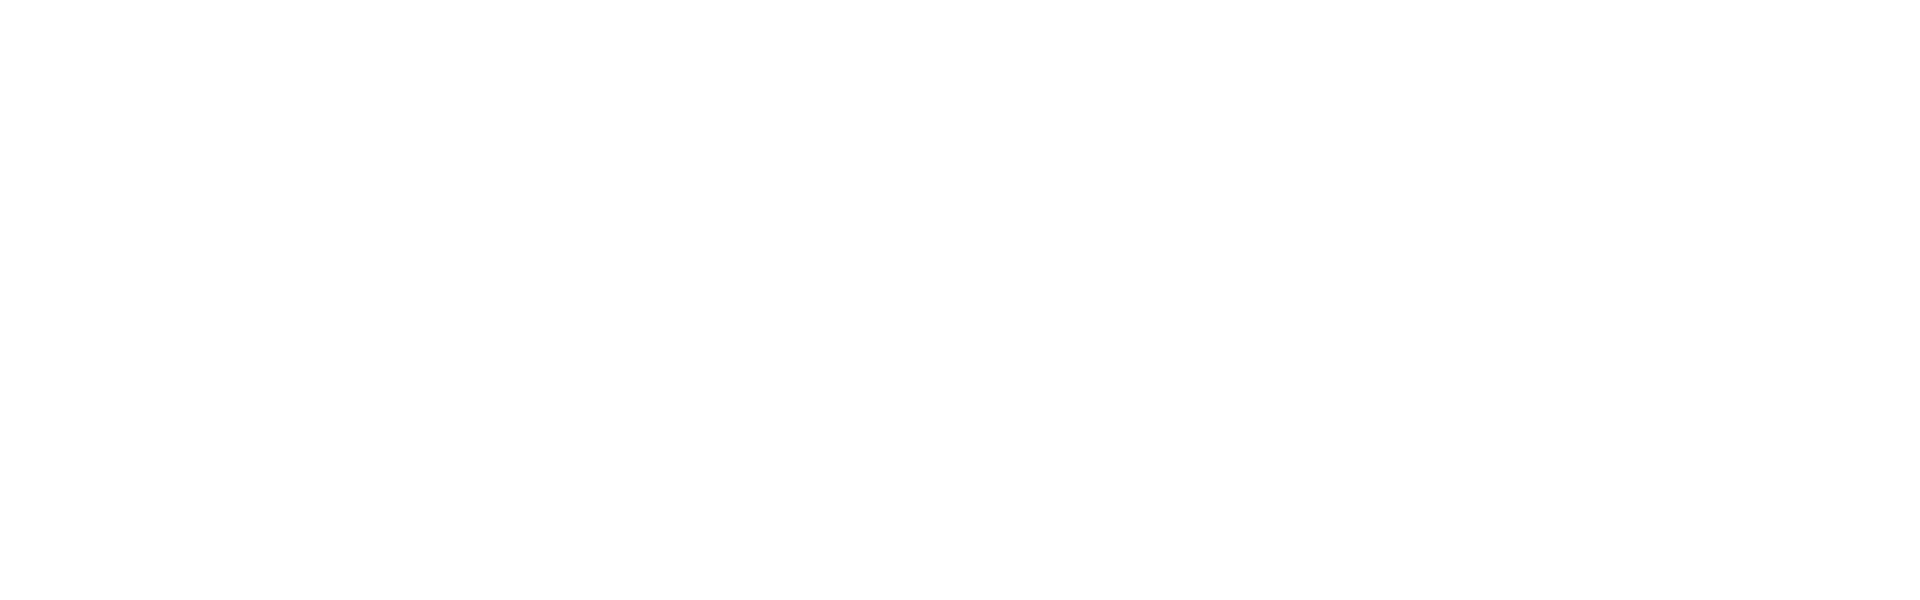 FallBanner.png